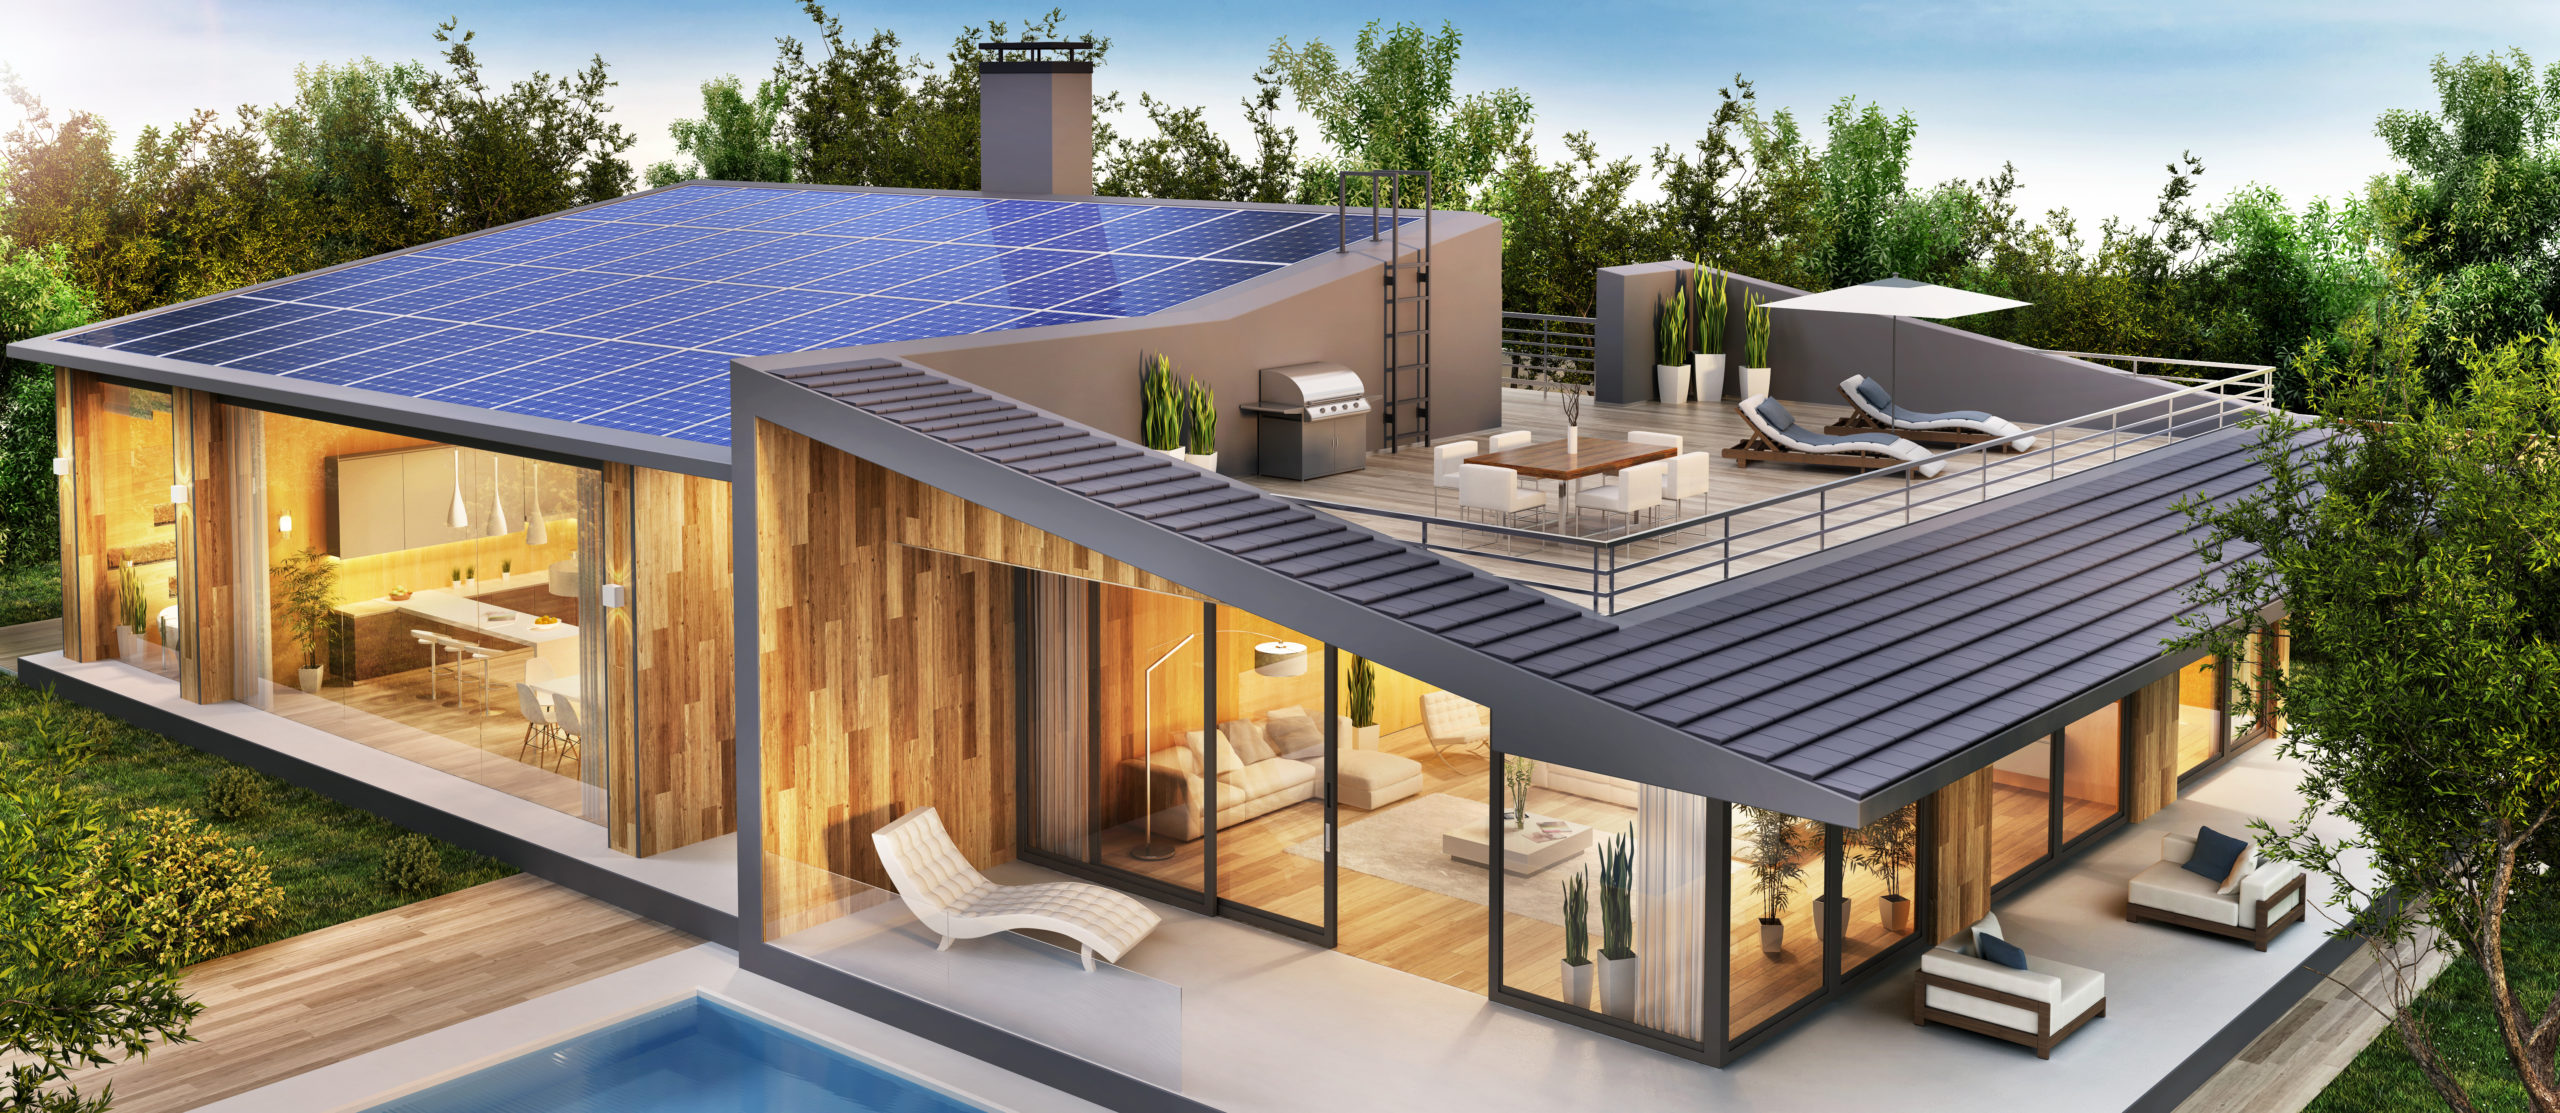 solar battery backup for your home